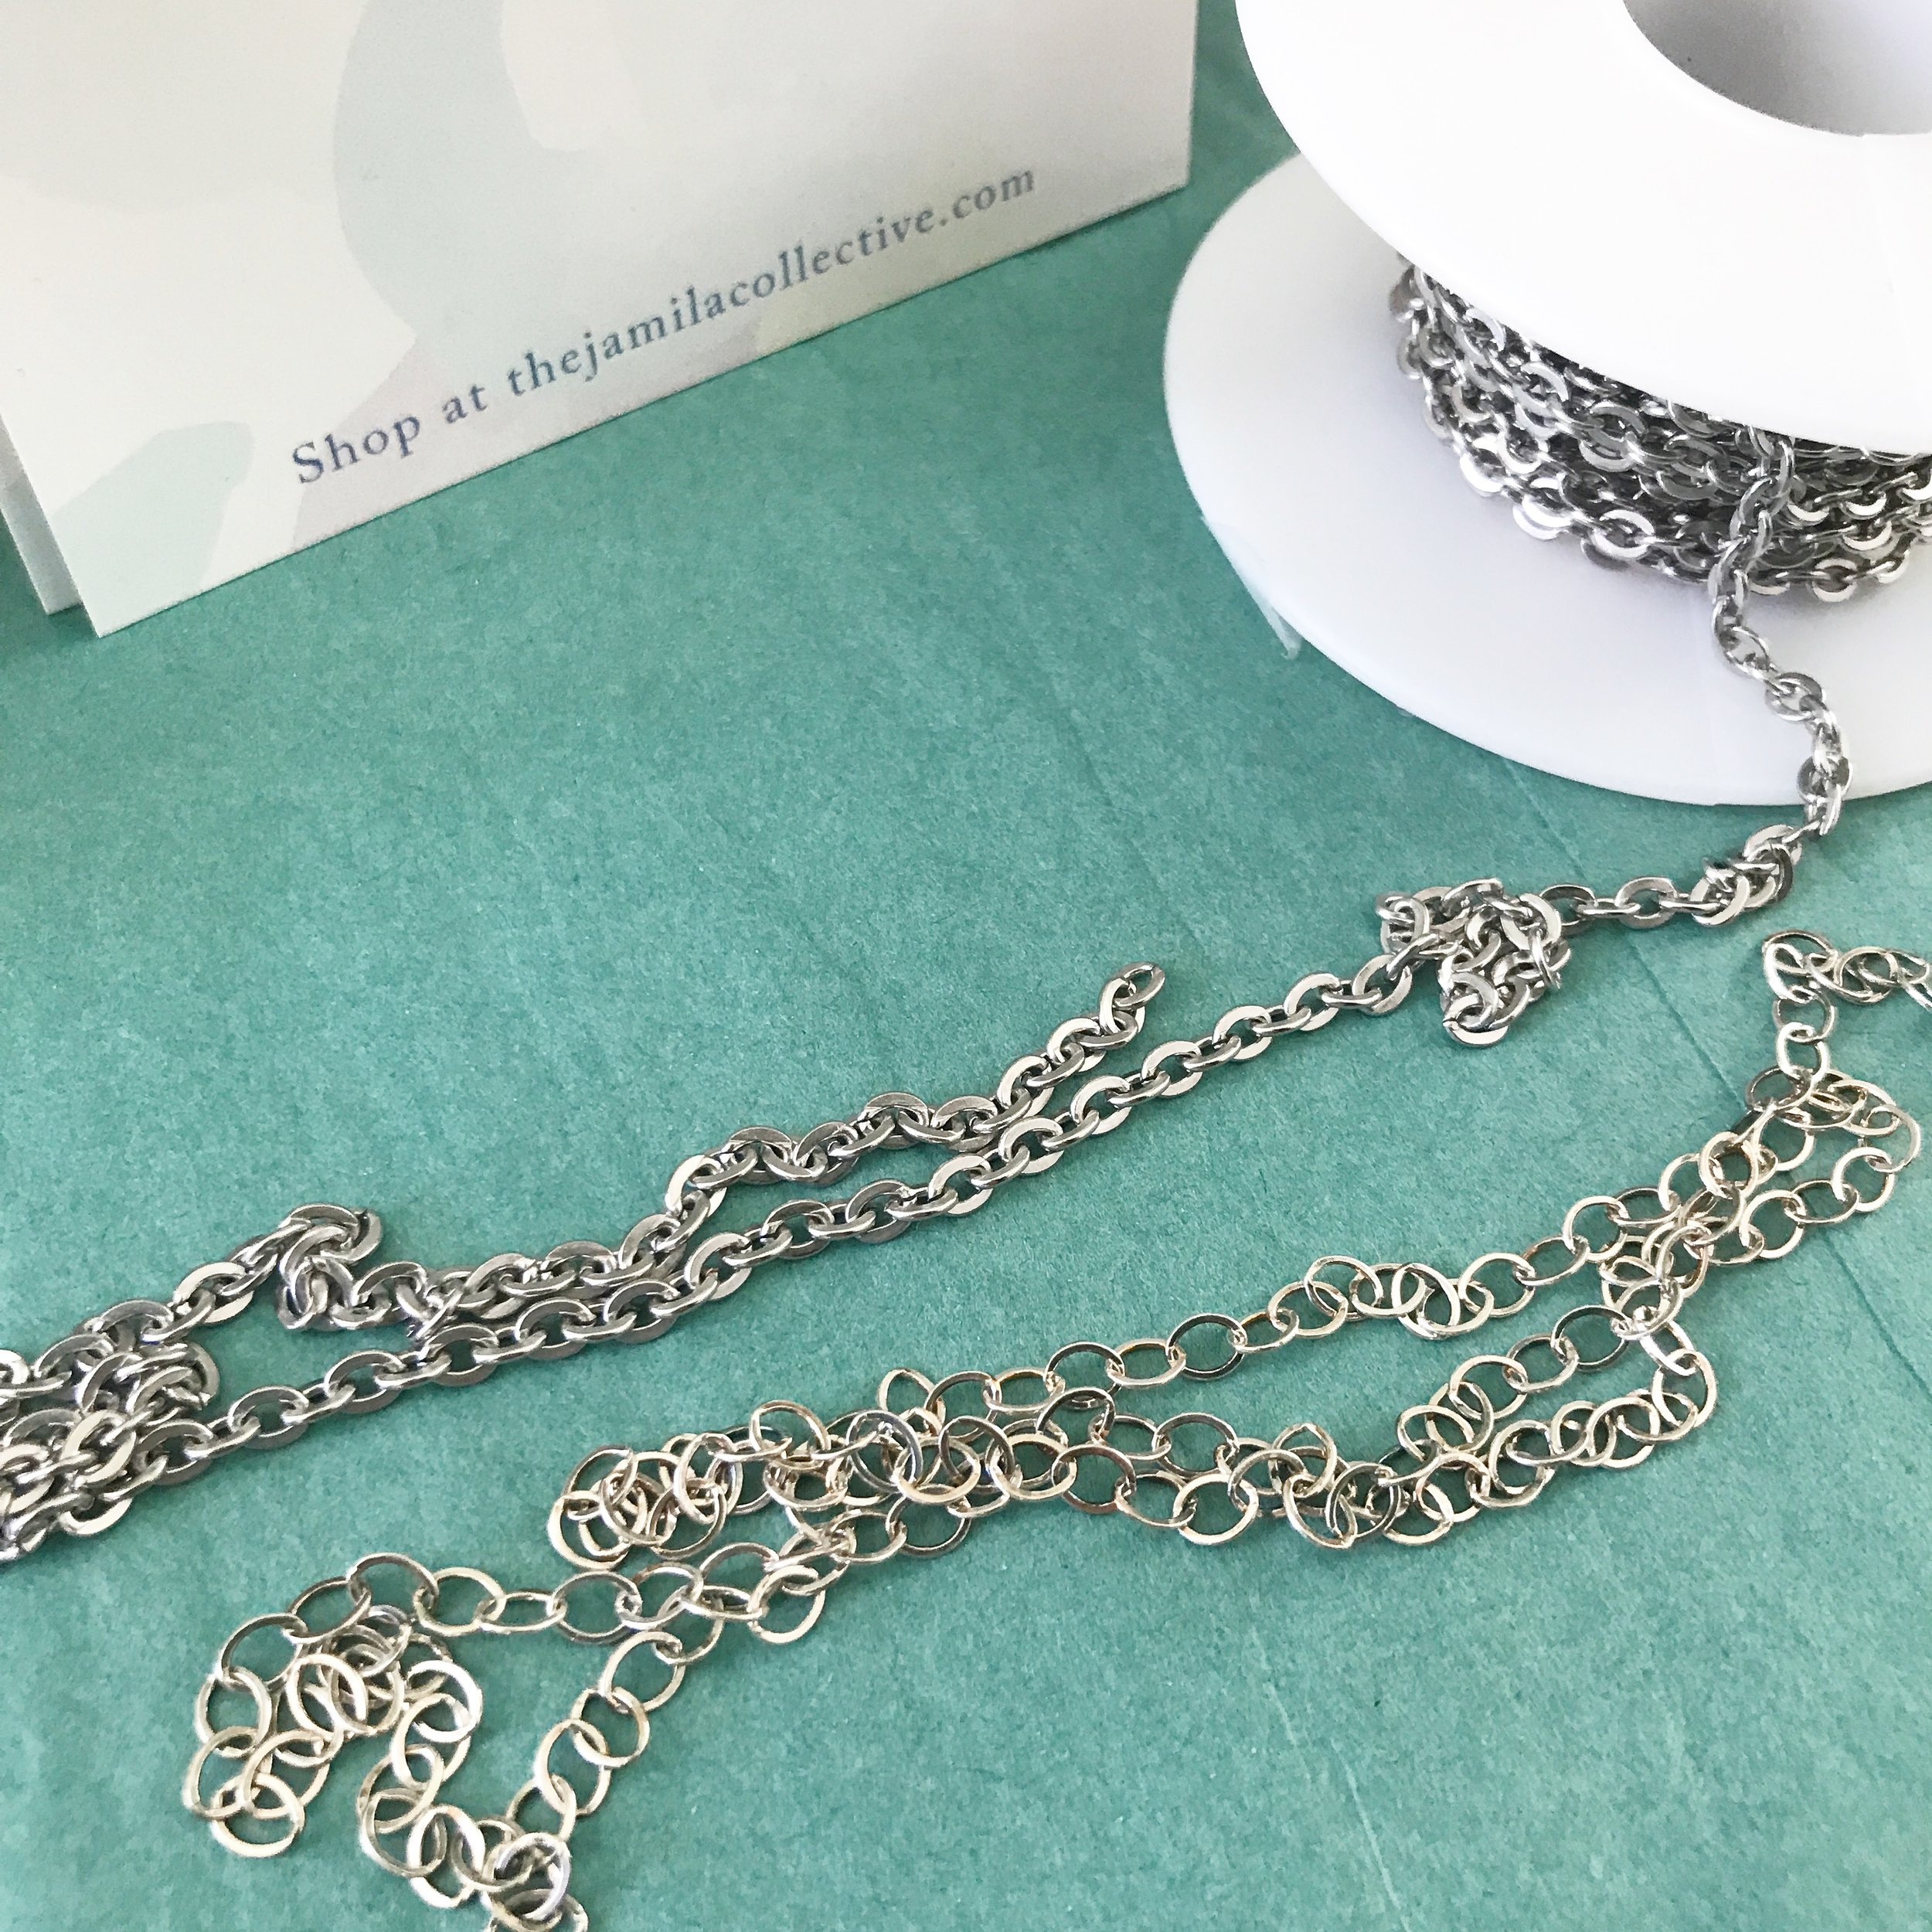 Made in the USA! - Sterling Silver & Stainless Steel Chain are made right here. Almost all our other metal components are made in the USA too!